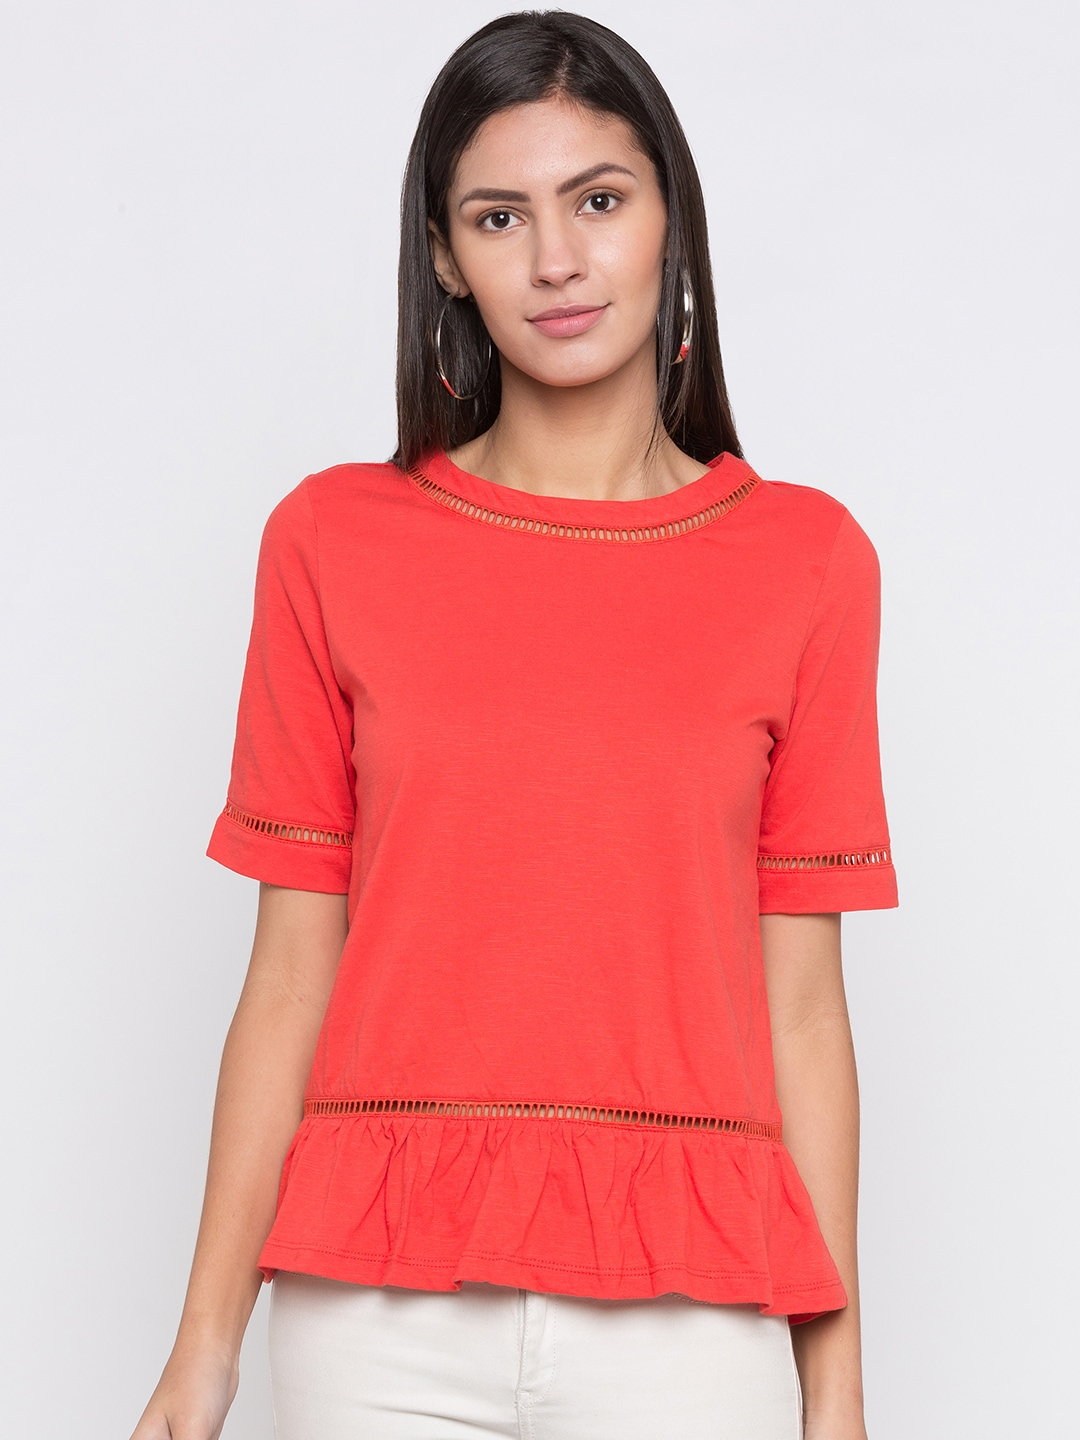 fb3772994fd Globus Skirt Tops - Buy Globus Skirt Tops online in India